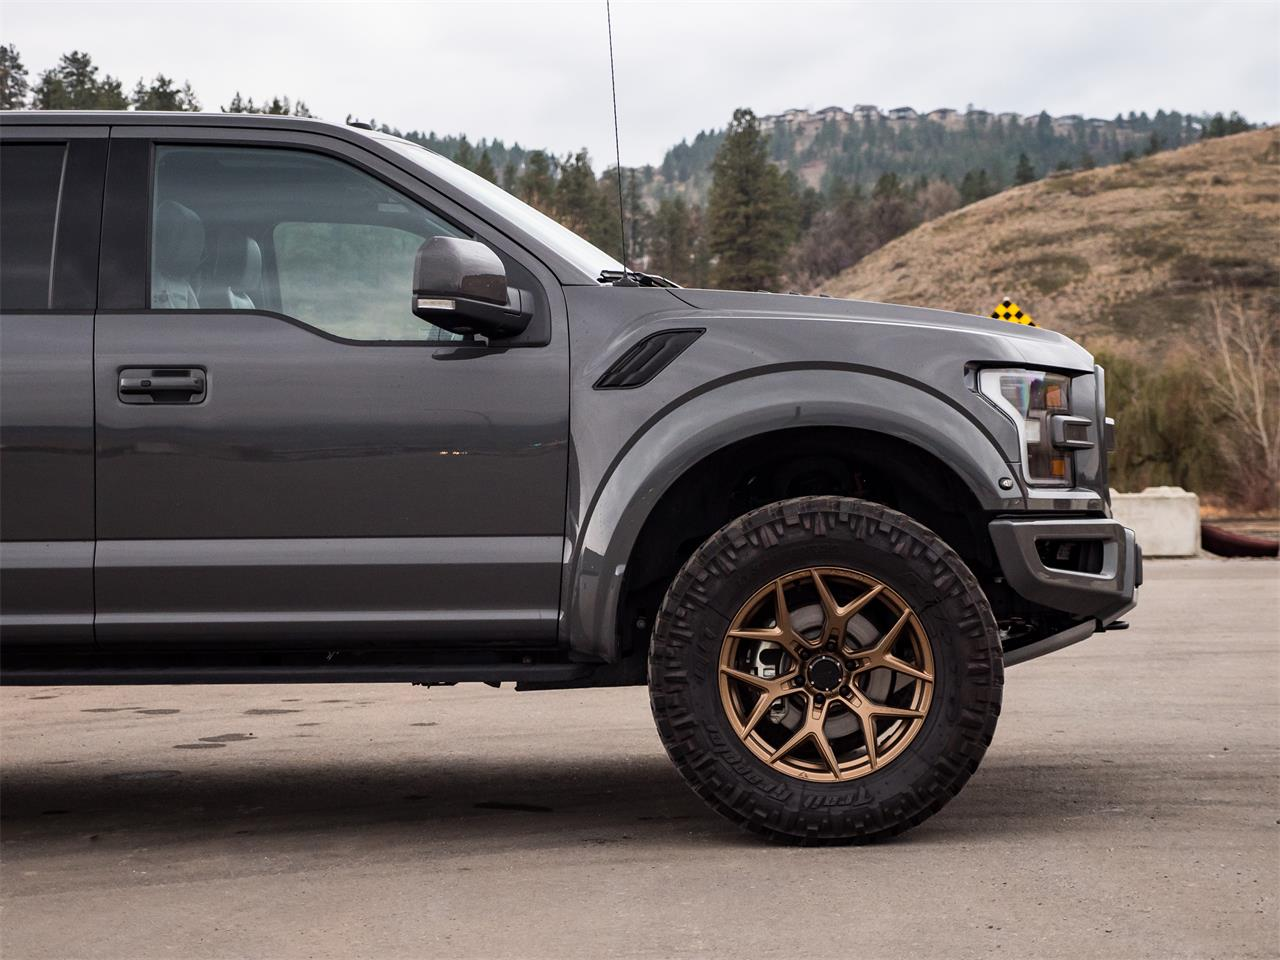 2018 Ford F150 (CC-1297010) for sale in Kelowna, British Columbia